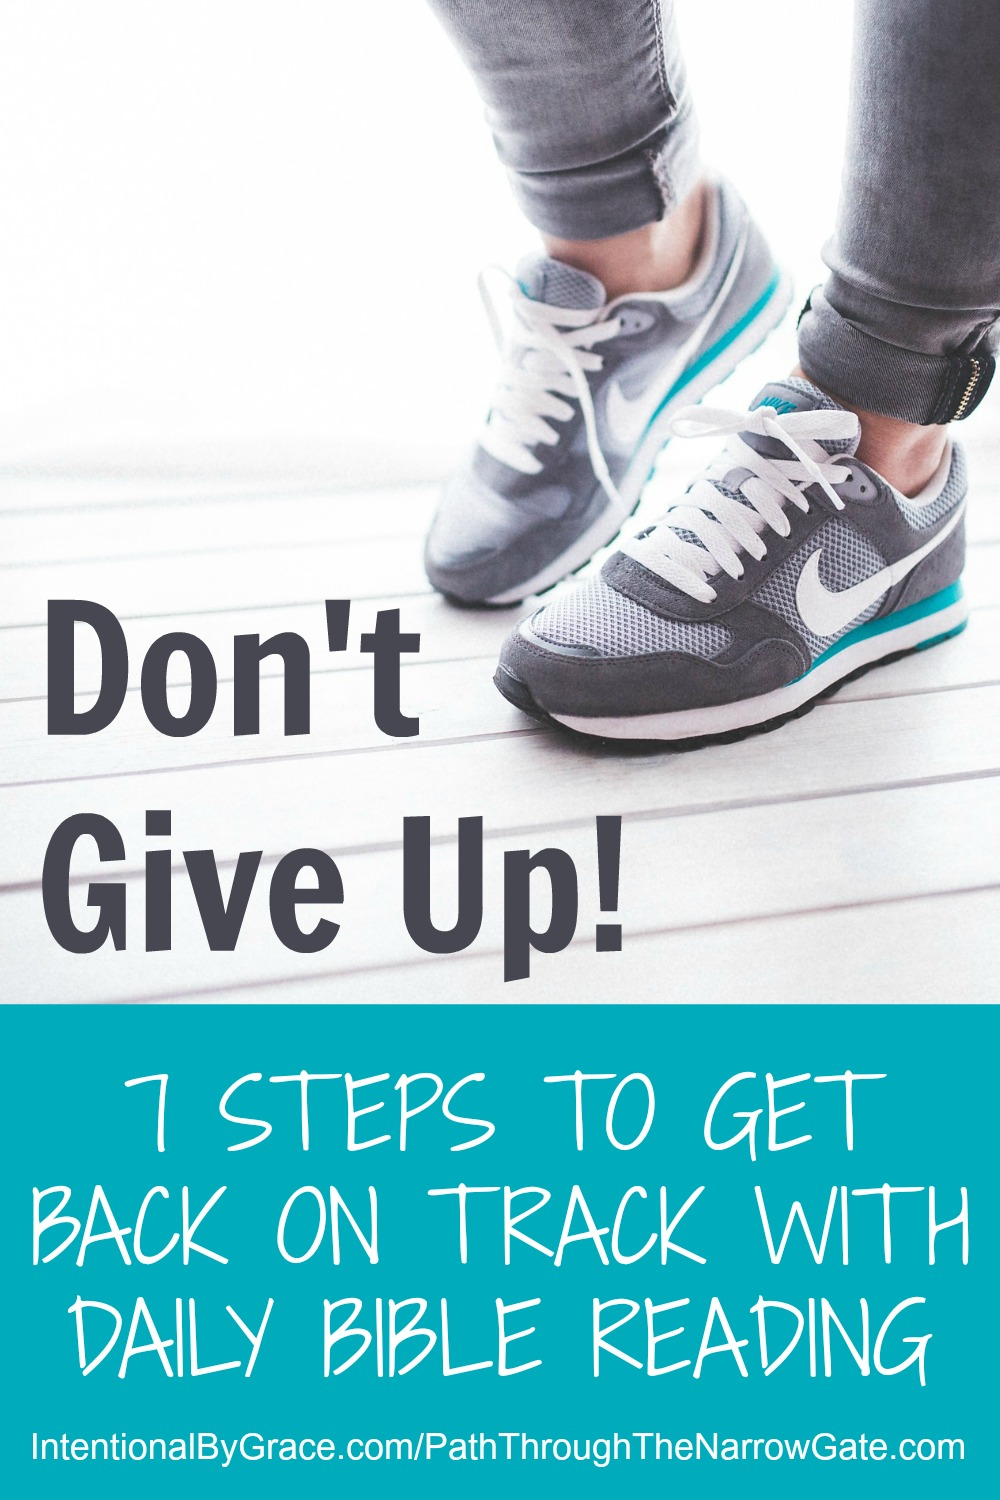 7 Steps to Get Back on Track With Daily Bible Reading|Are you falling behind in your Bible reading? Feeling like you are failing to meet your goals? Don't give up!|IntentionalByGrace.com